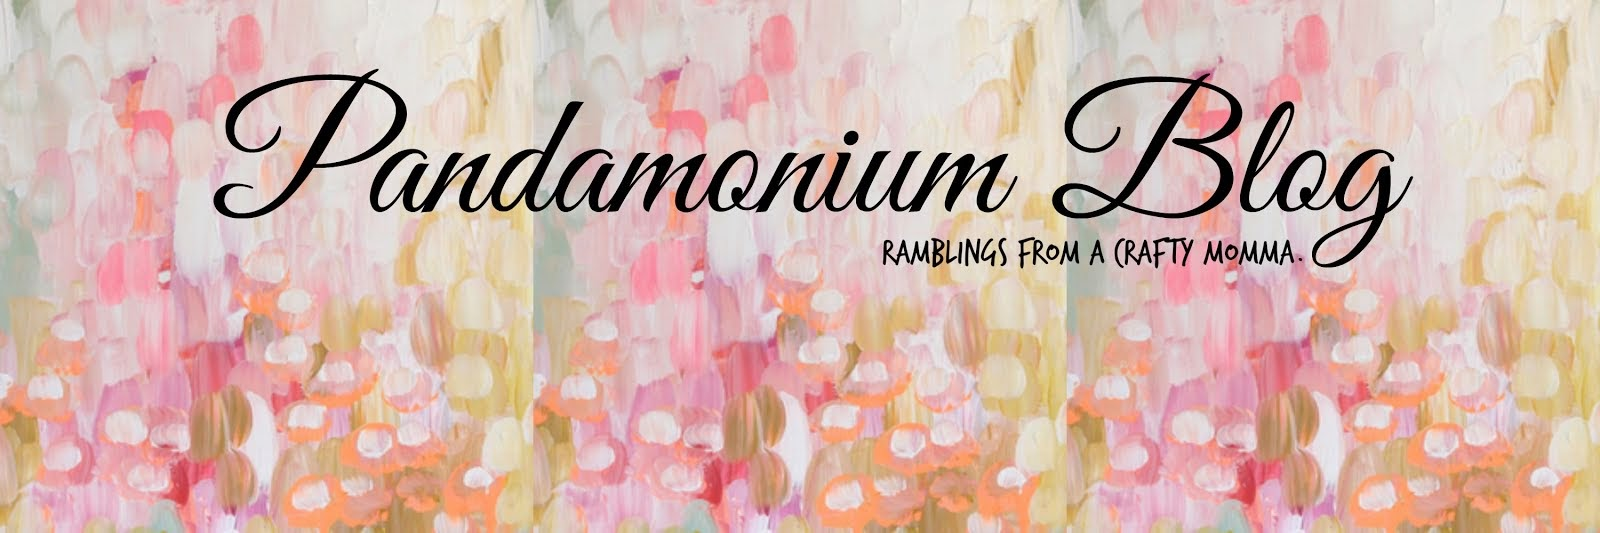 Pandamonium Blog - Ramblings of a New Momma!